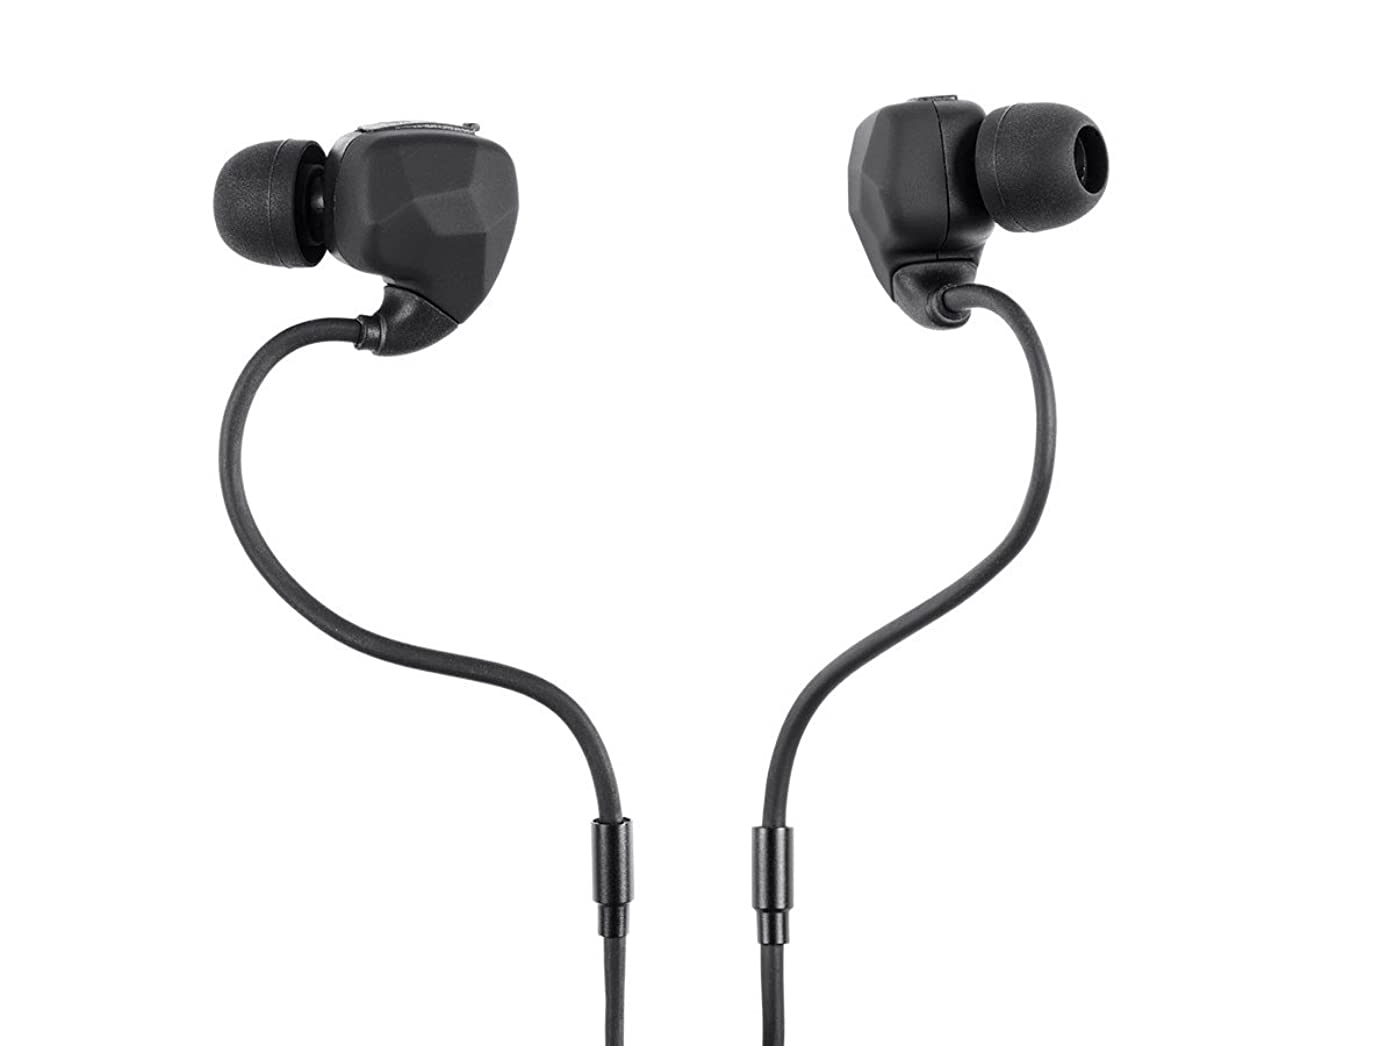 Monoprice Sweatproof Bluetooth Wireless Earbuds Headphones with IPx4 Rated, Memory Wire and Microphone